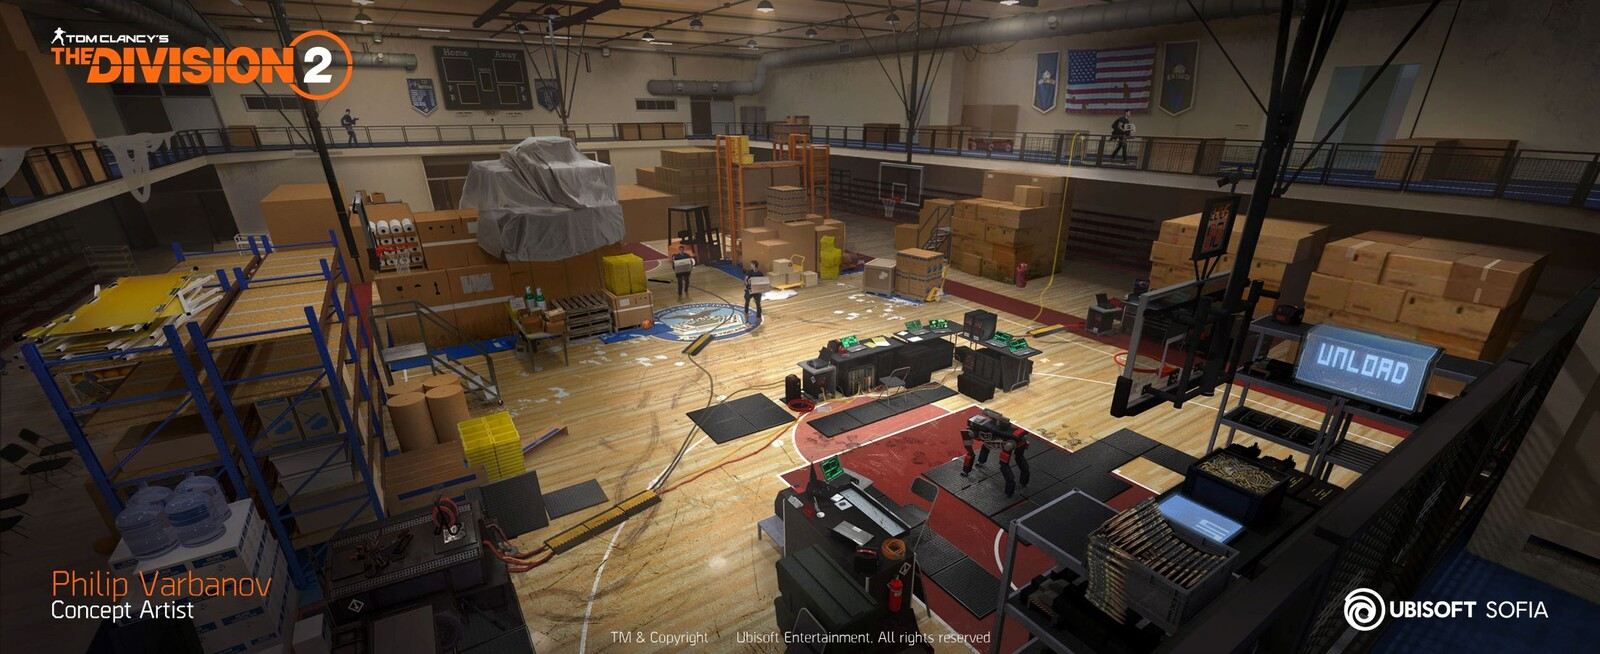 The Division 2 - Pentagon Gym